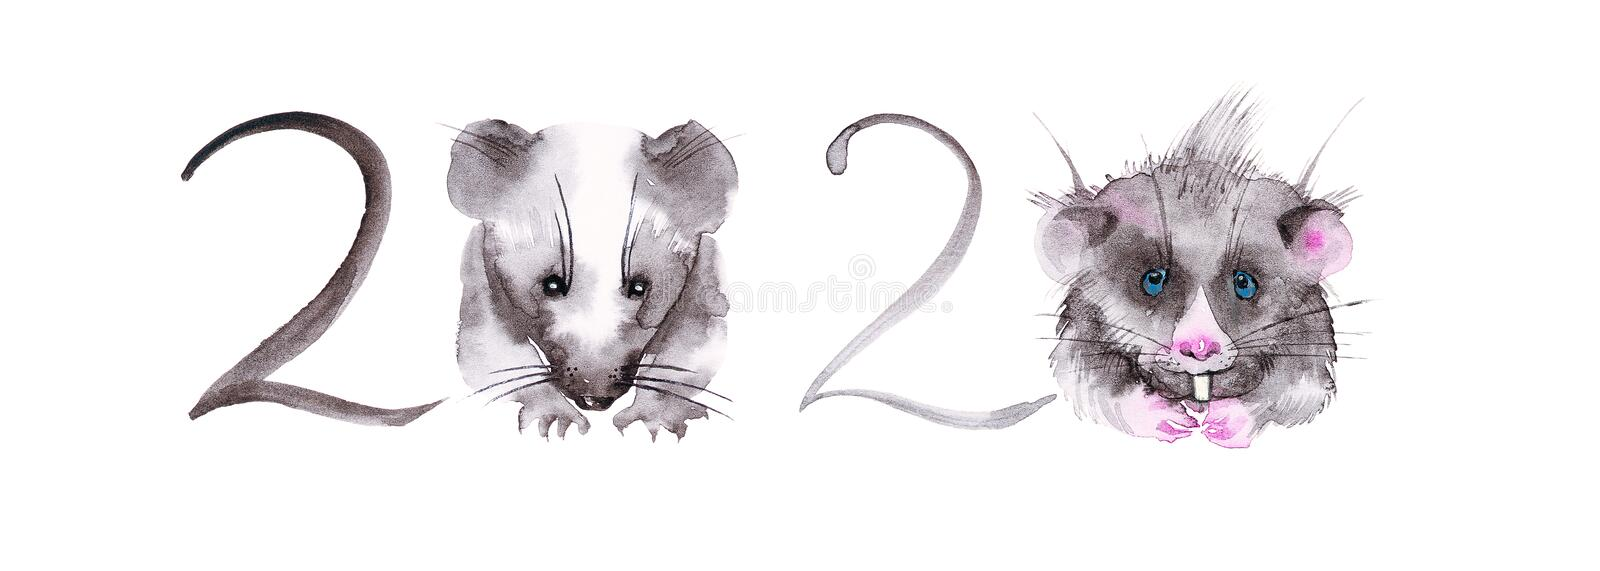 The rat is a symbol of the new year 2020. Abstract illustration of numbers for calendar. Instead of zeros, cute rats. Watercolor royalty free stock image